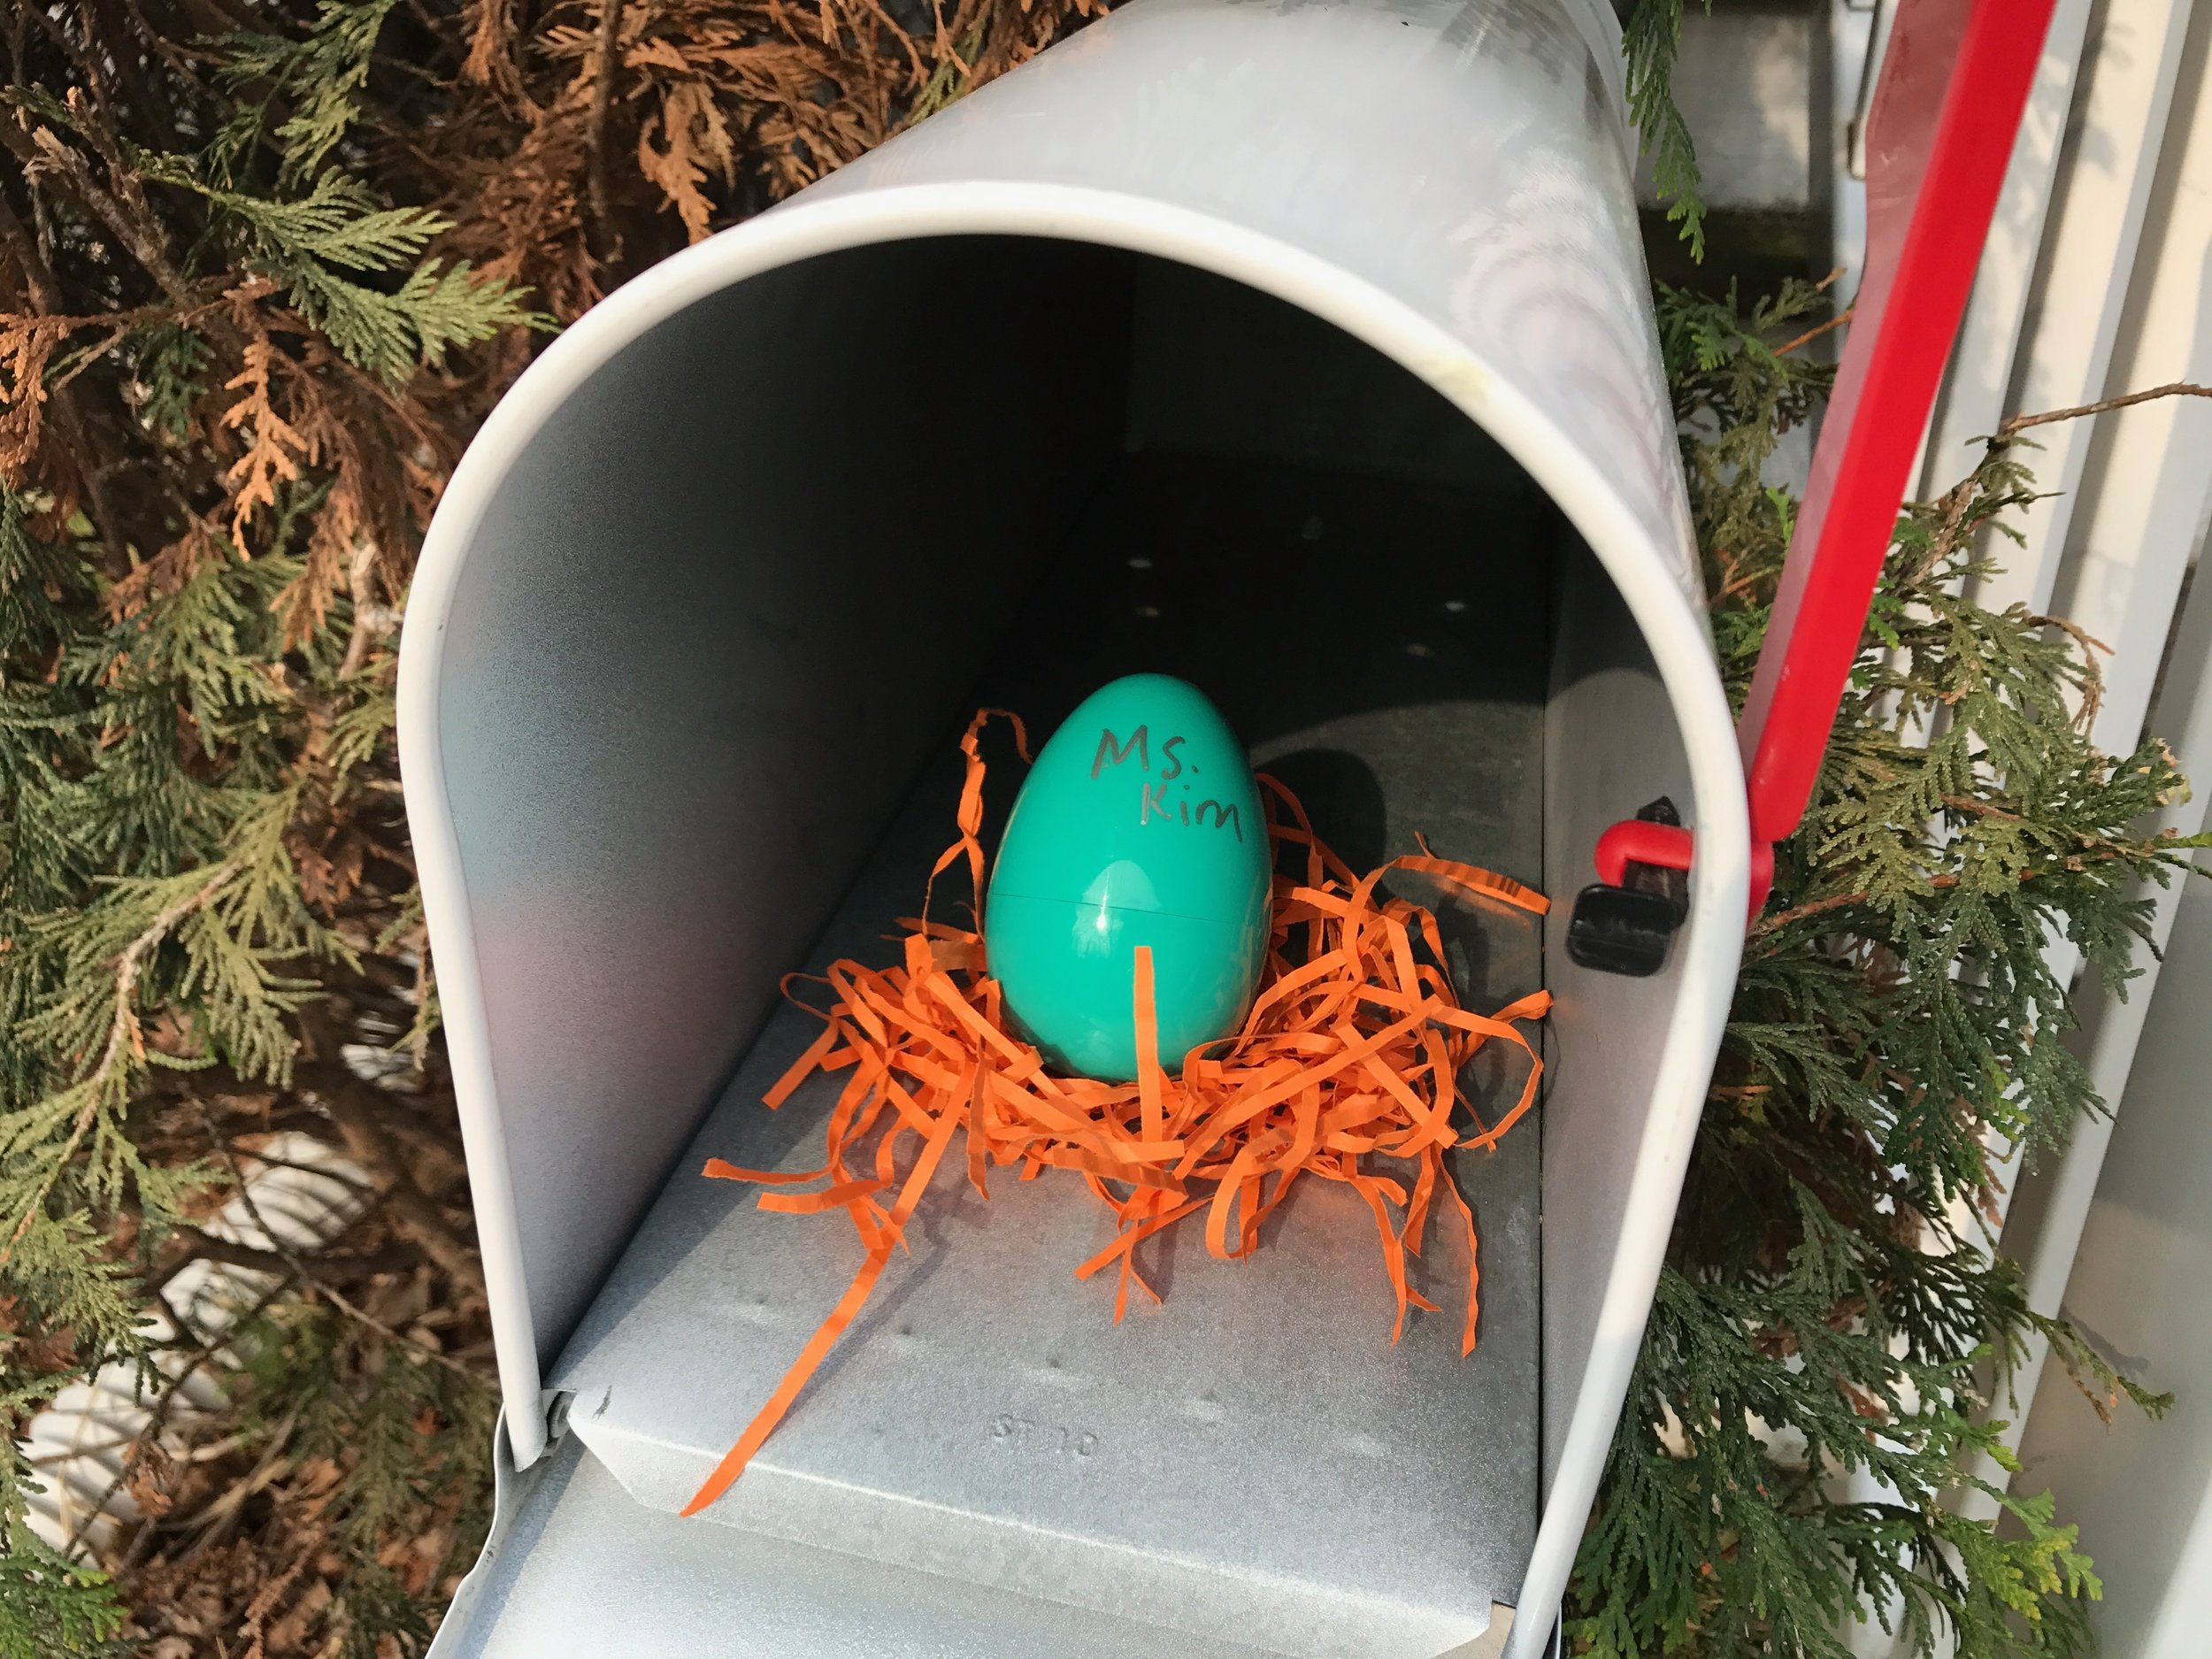 One Easter,I gave Ms. Kim a   Thoughtful Pinch  . She wrote a note the very next time mail was delivered!